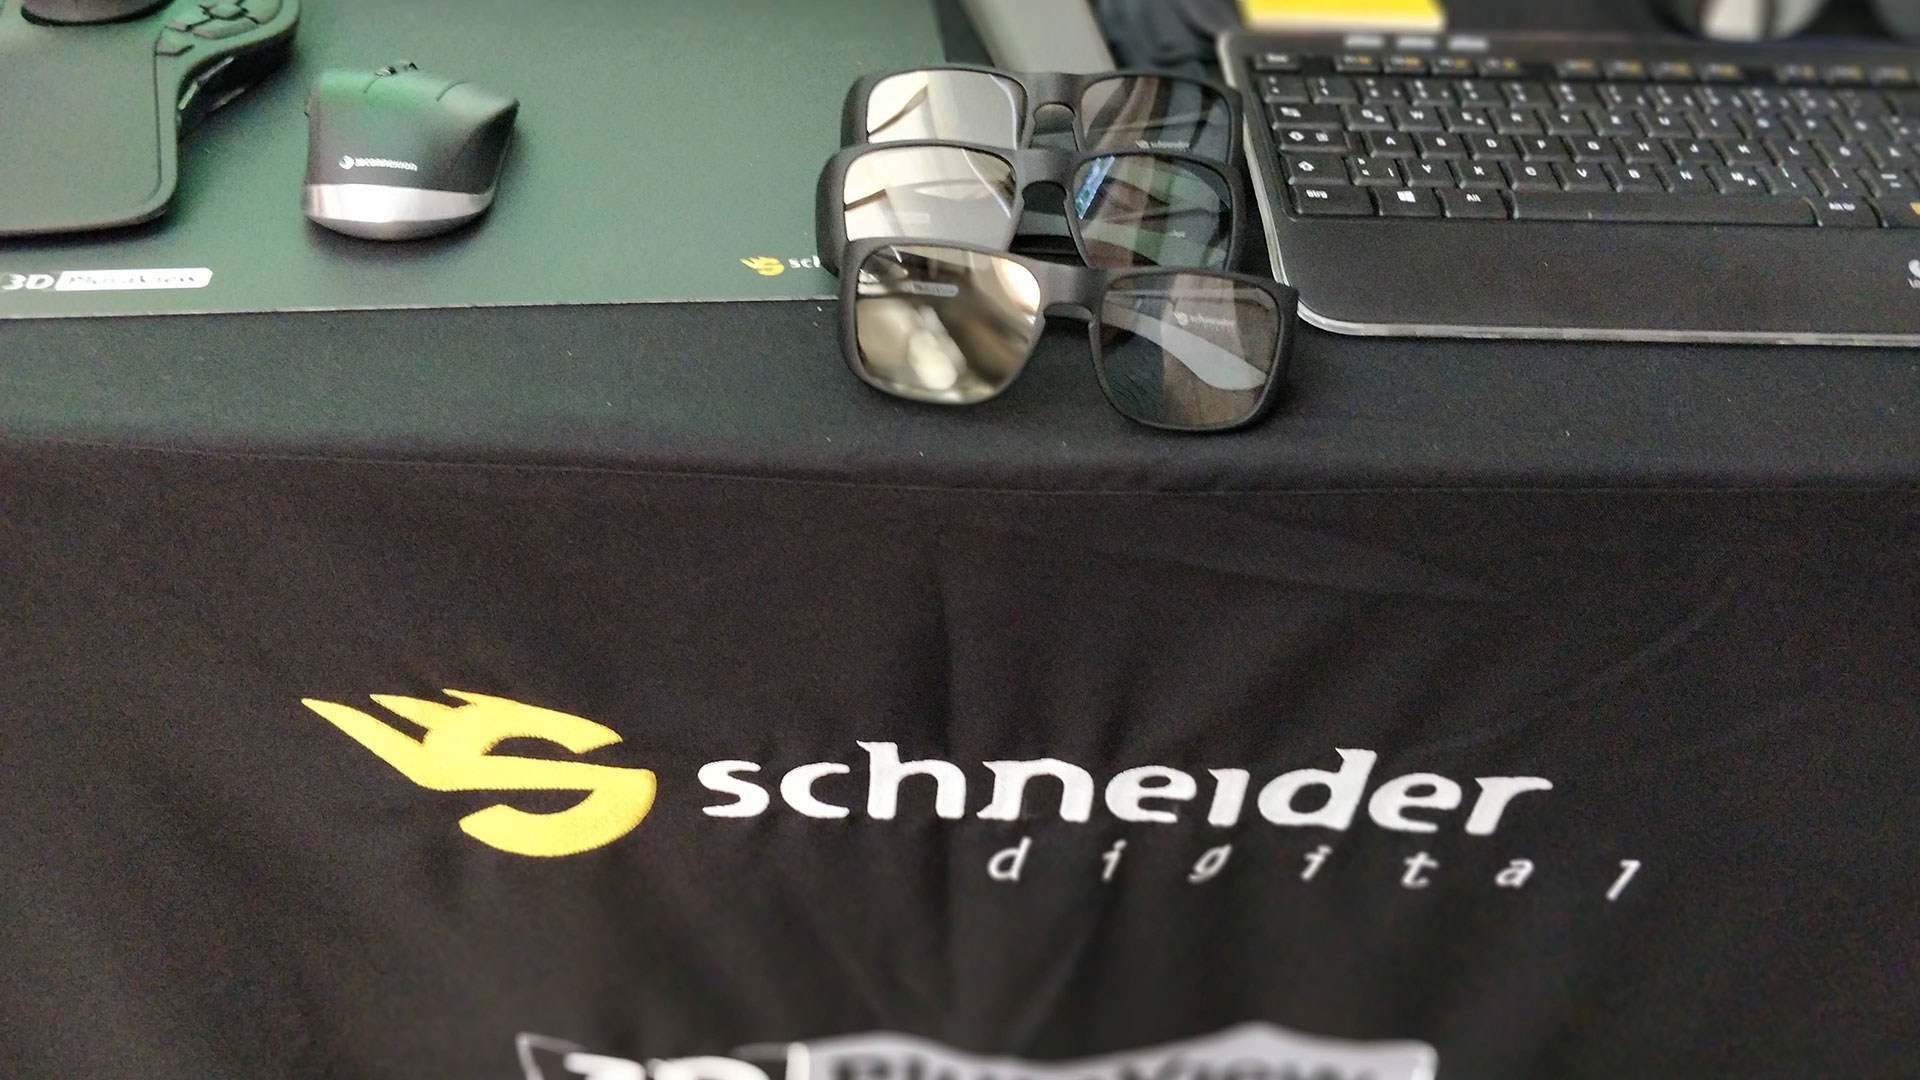 Review - 3D PluraView from Schneider Digital - October 15 to